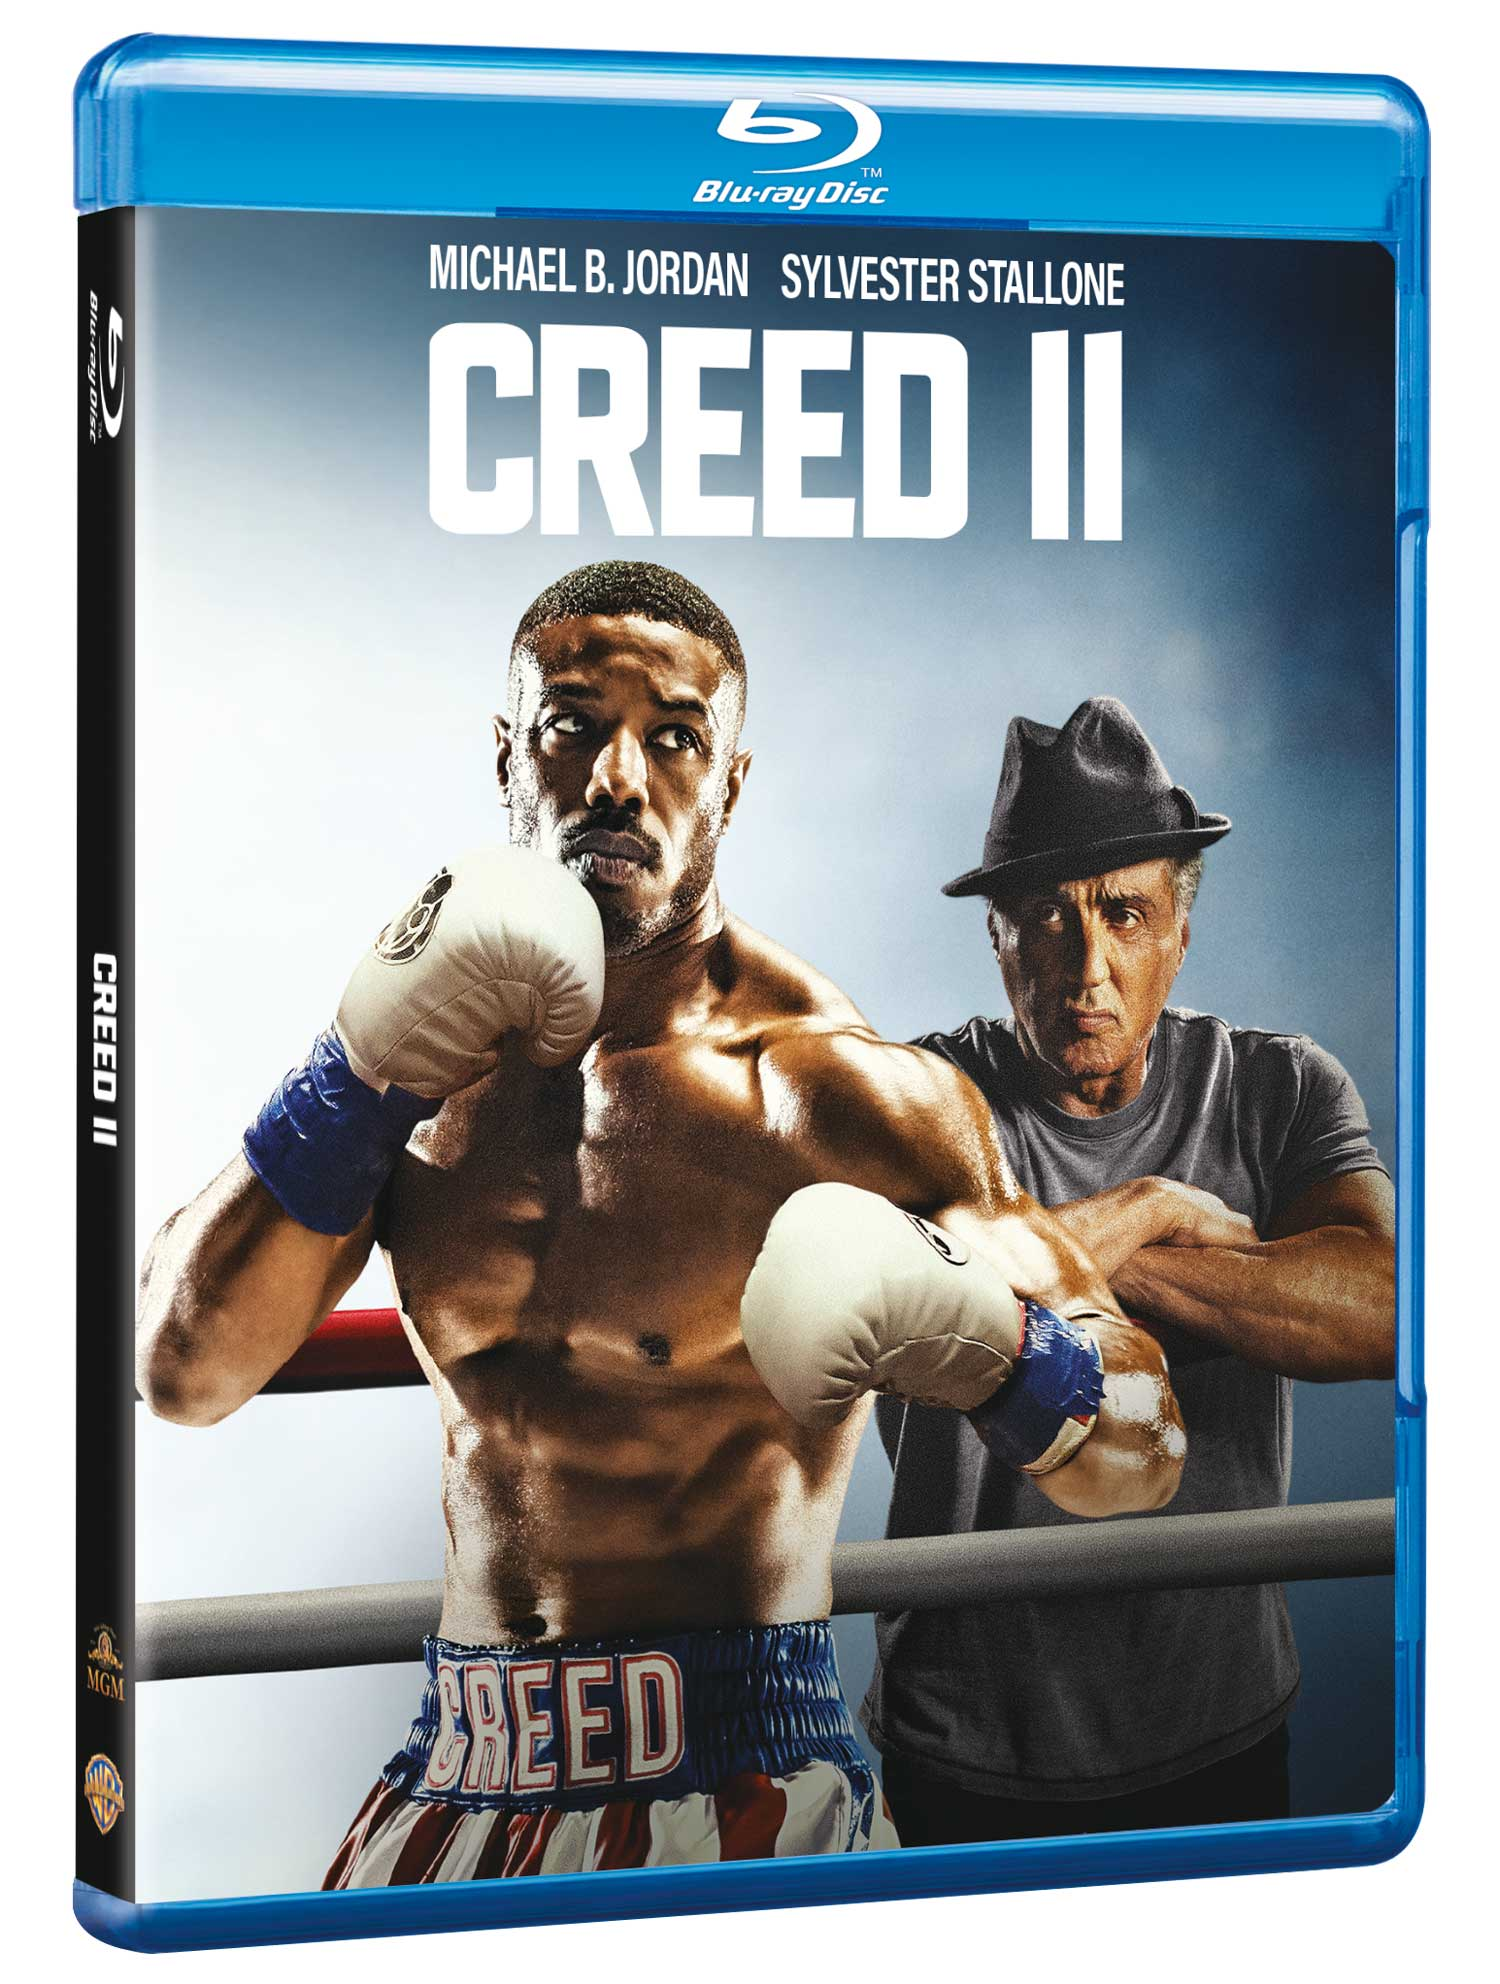 CREED 2 - BLU RAY